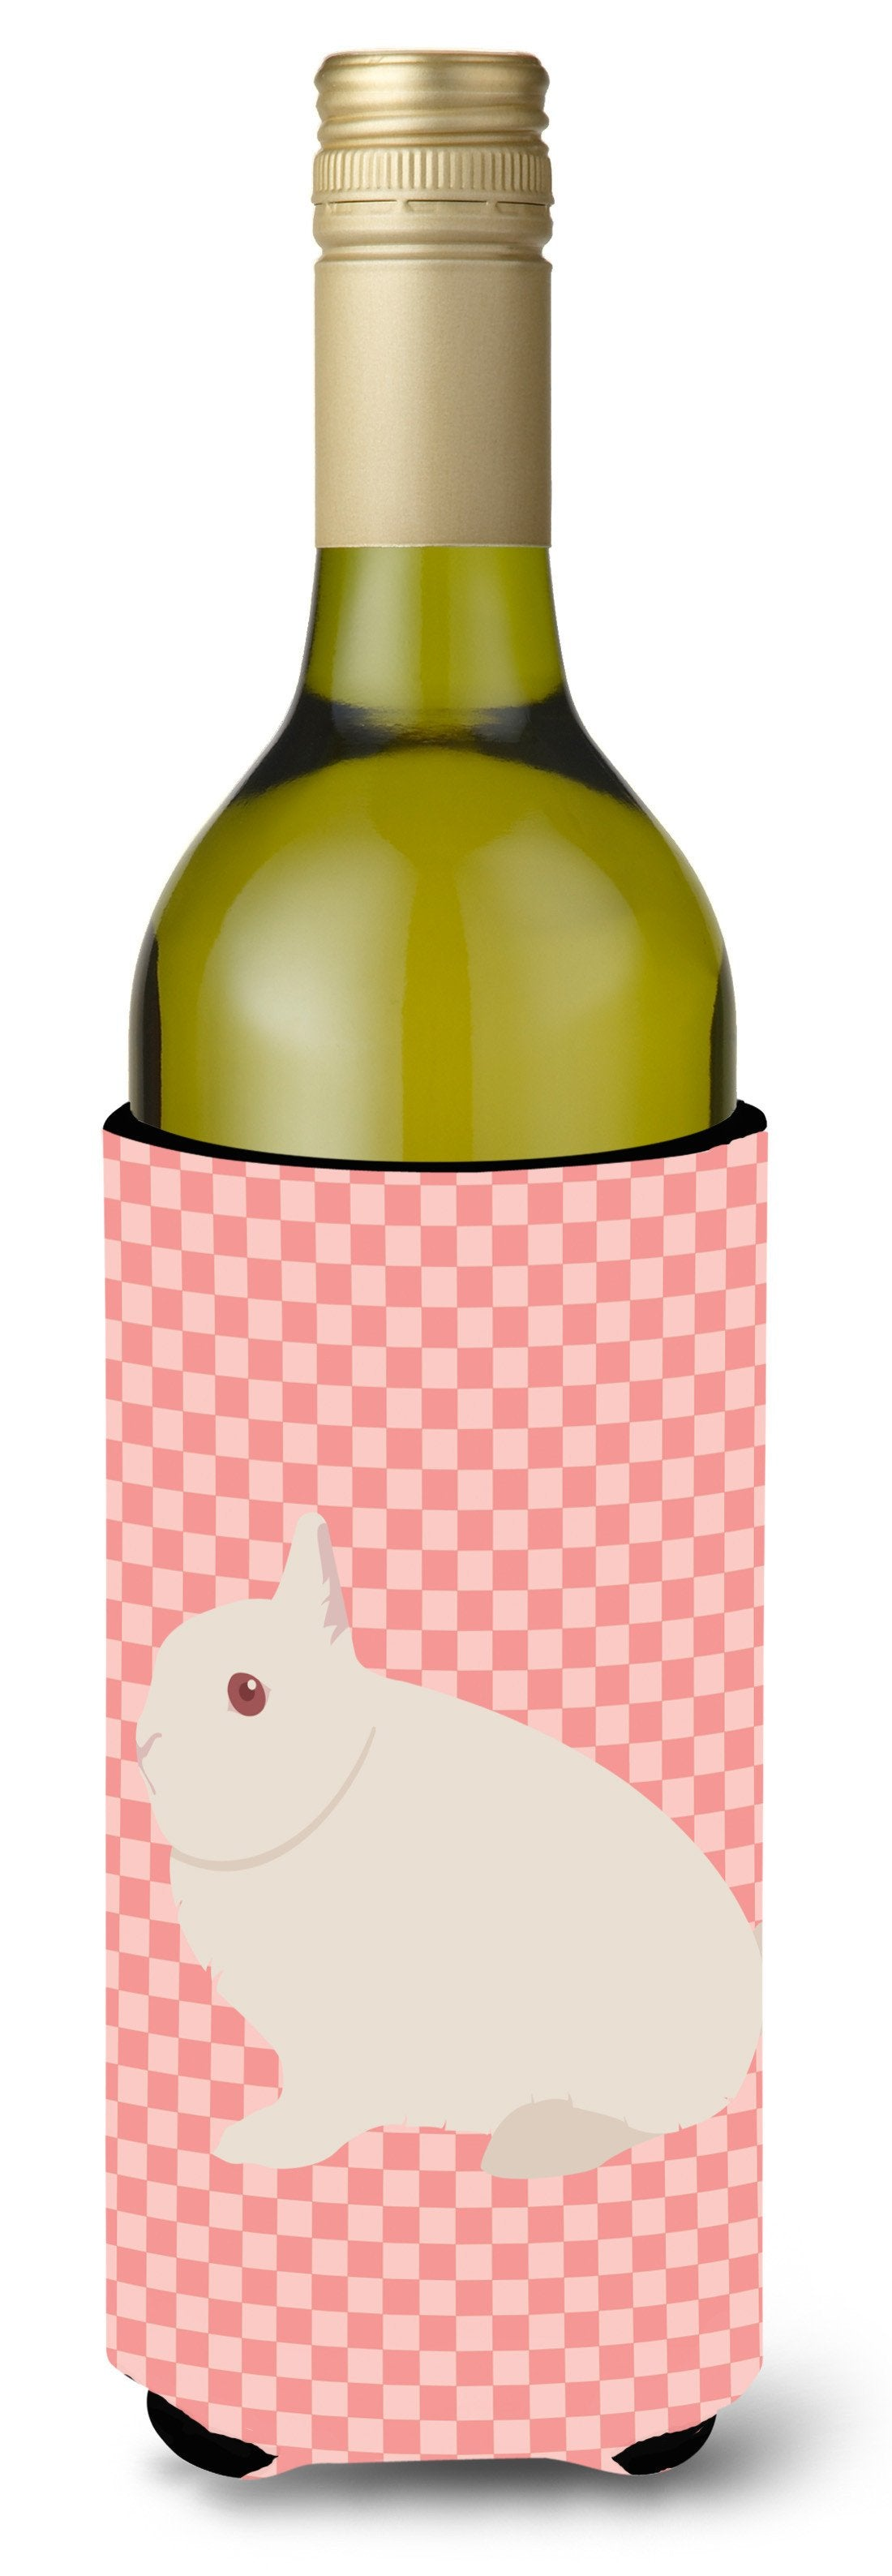 Hermelin Rabbit Pink Check Wine Bottle Beverge Insulator Hugger BB7964LITERK by Caroline's Treasures